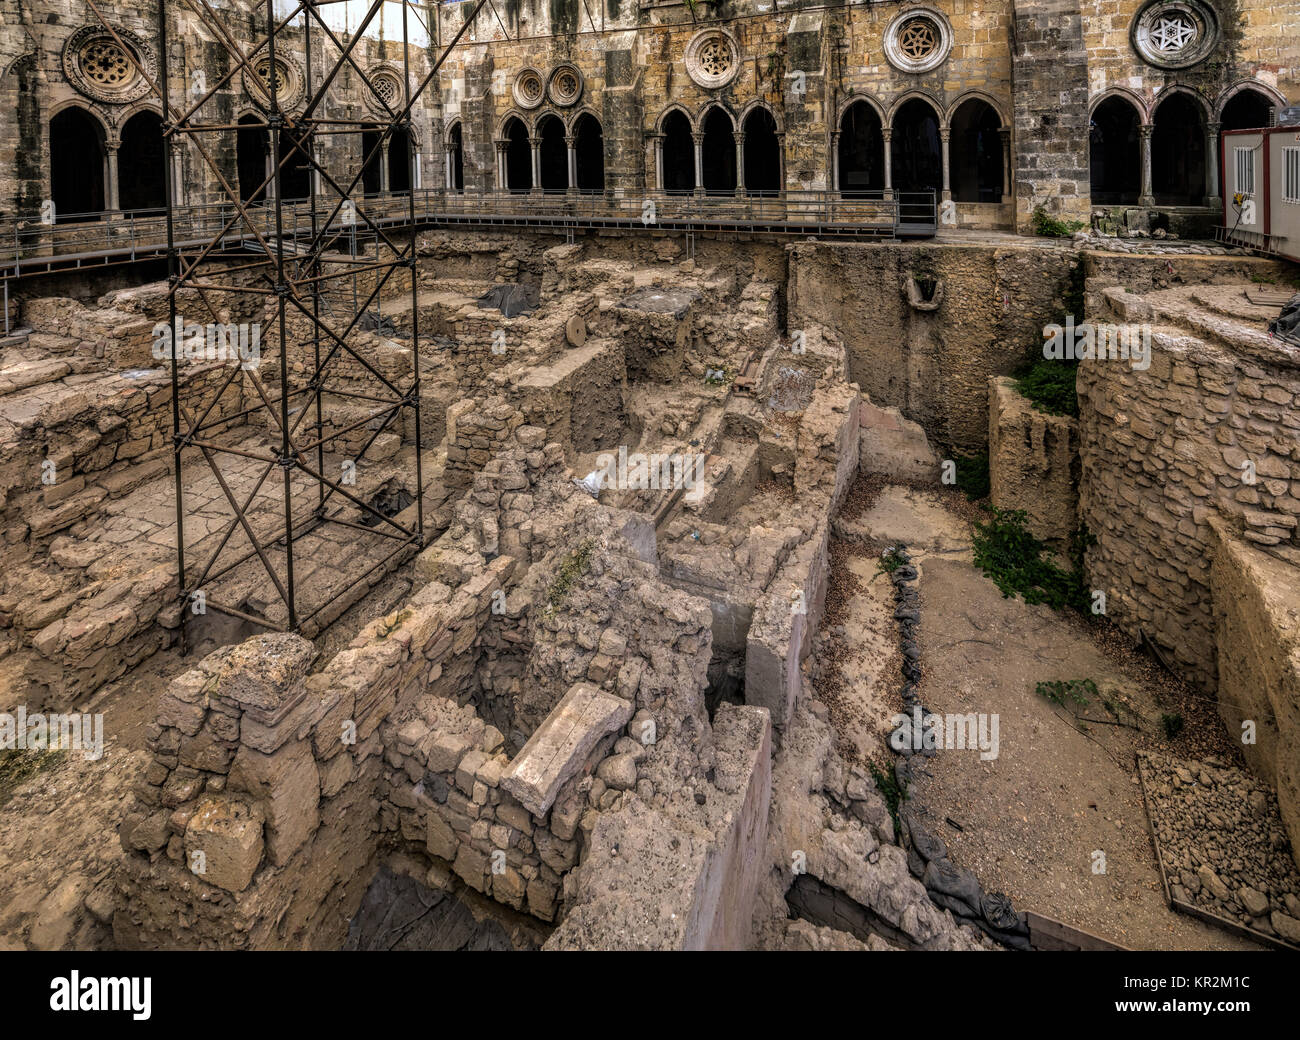 Lisbon, Portugal, August 7, 2017: The central courtyard of the Lisbon Cathedral's cloister has been excavated - Stock Image